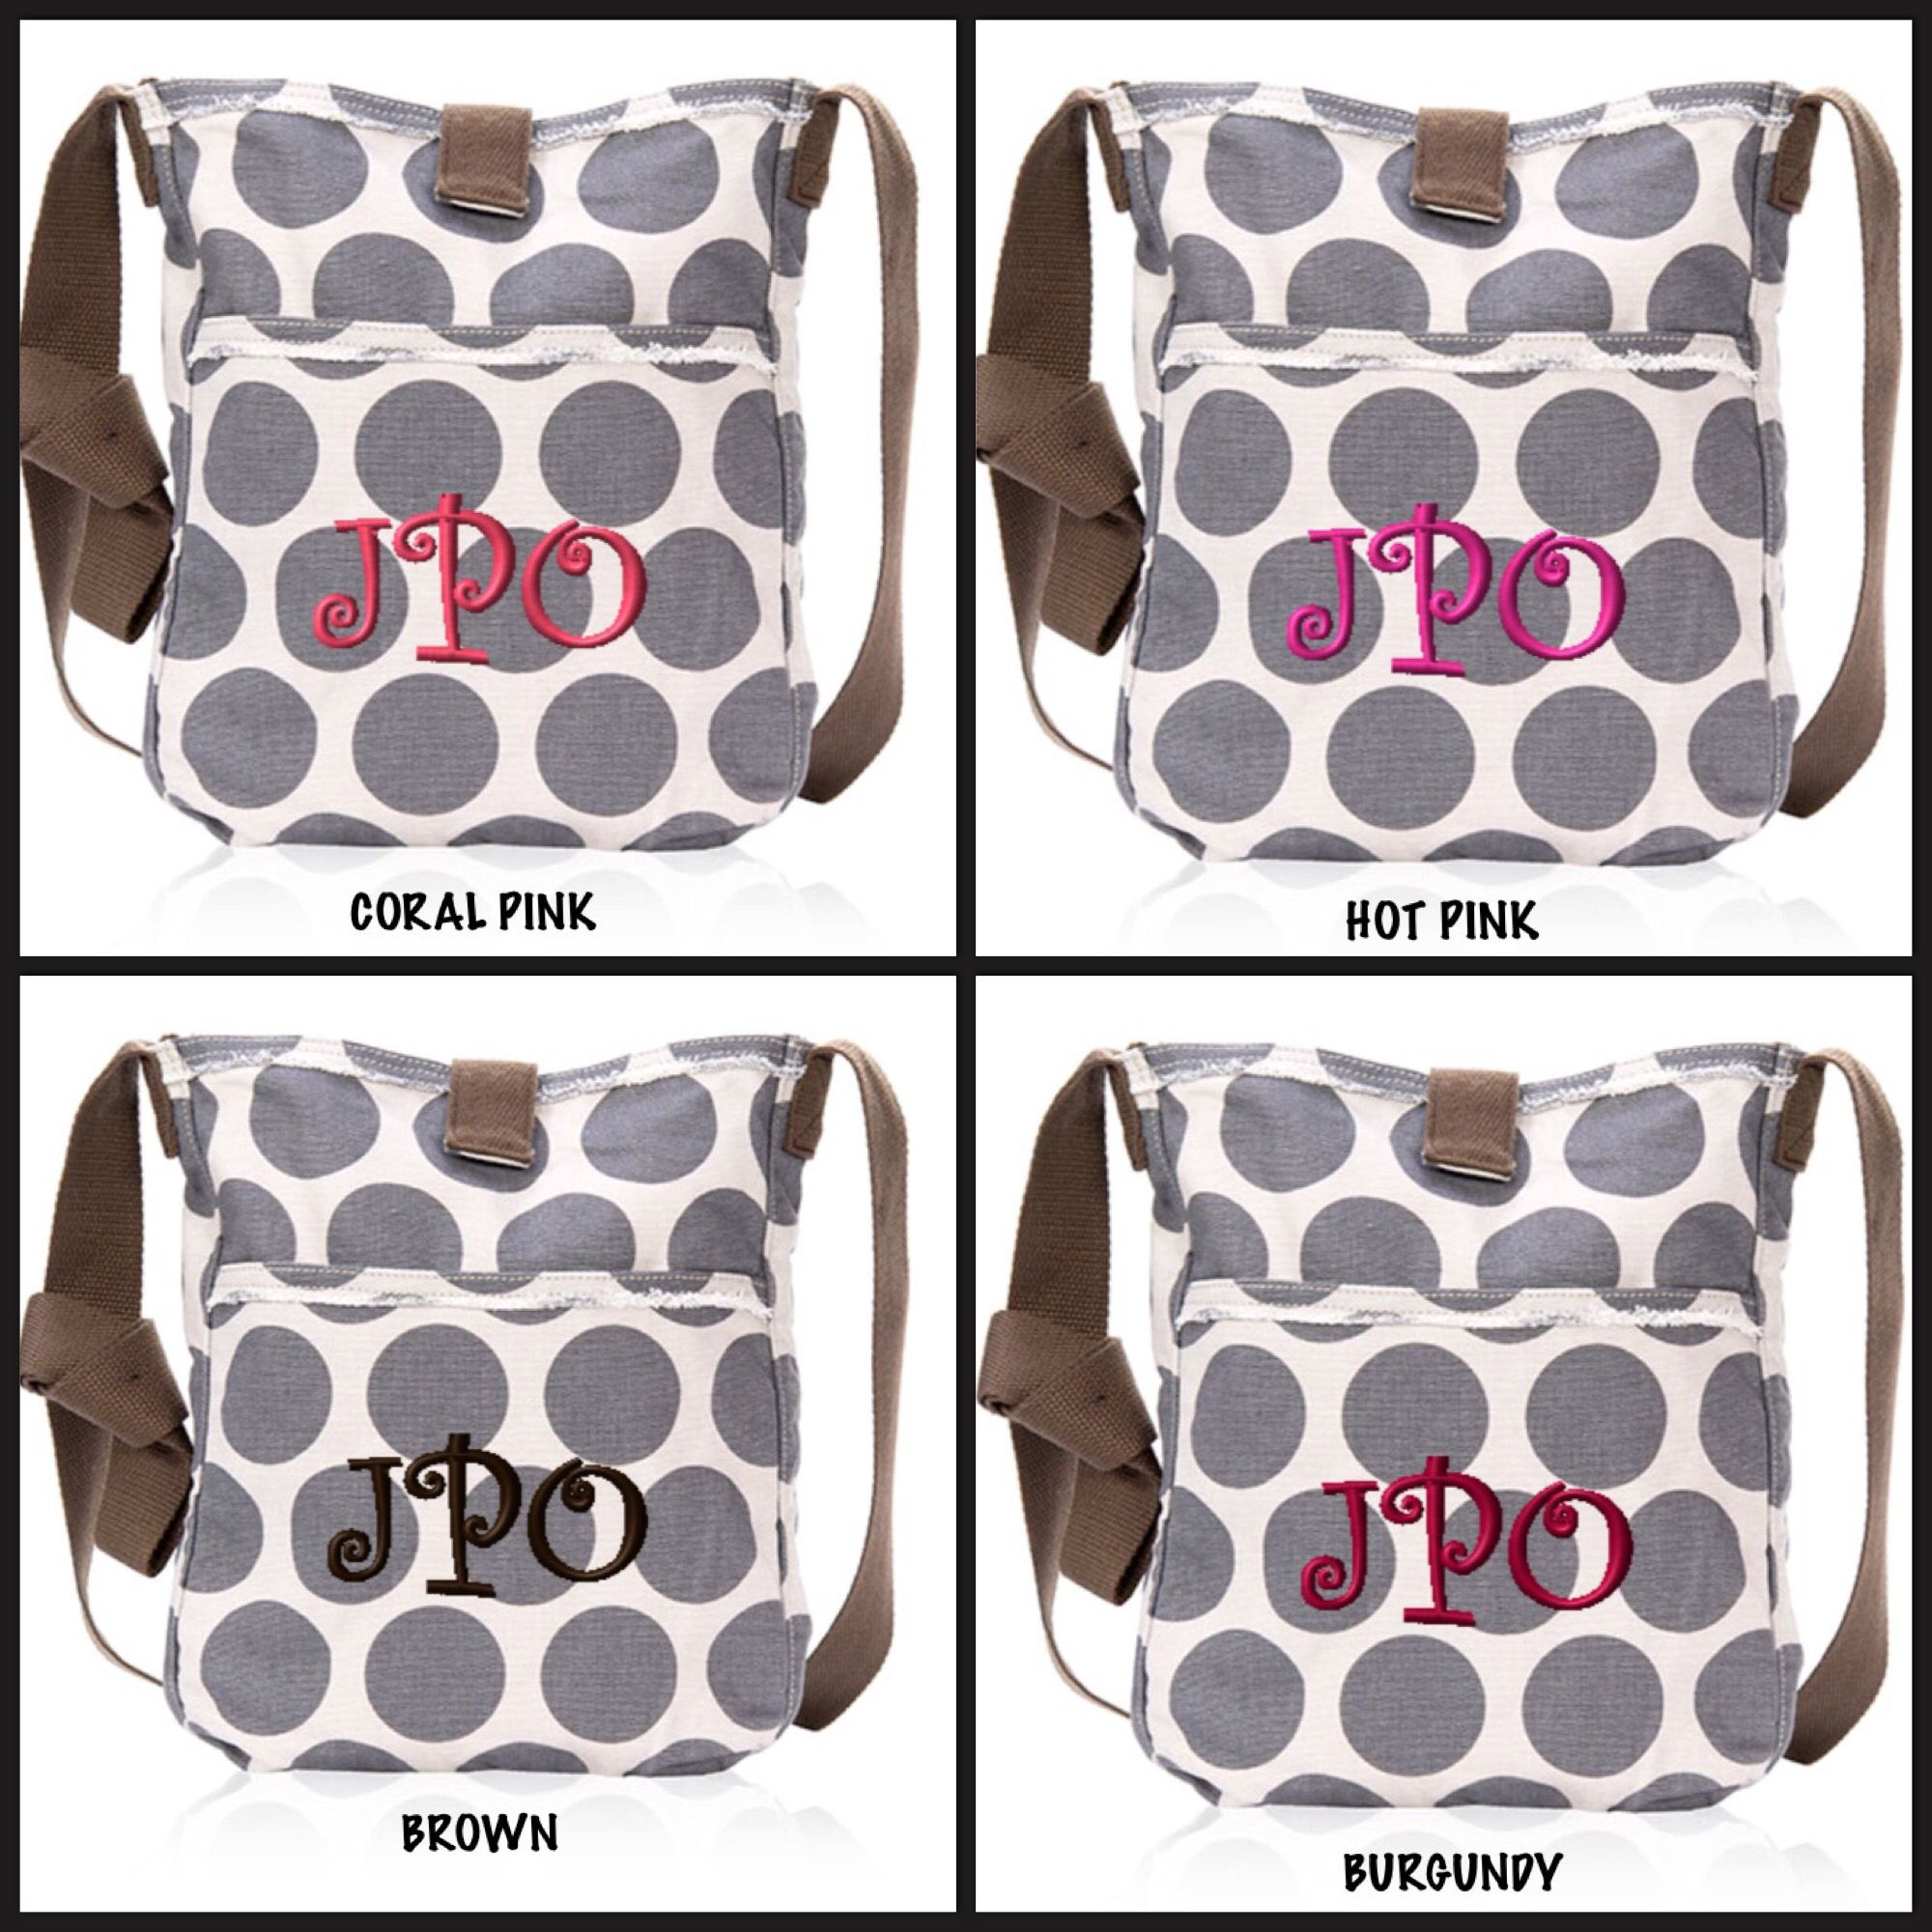 Thirty one november customer special 2014 - Grey Mod Dot Retro Metro Crossbody Only For Sale In The Month Of Oct Thirty One Gifts Font Style Is